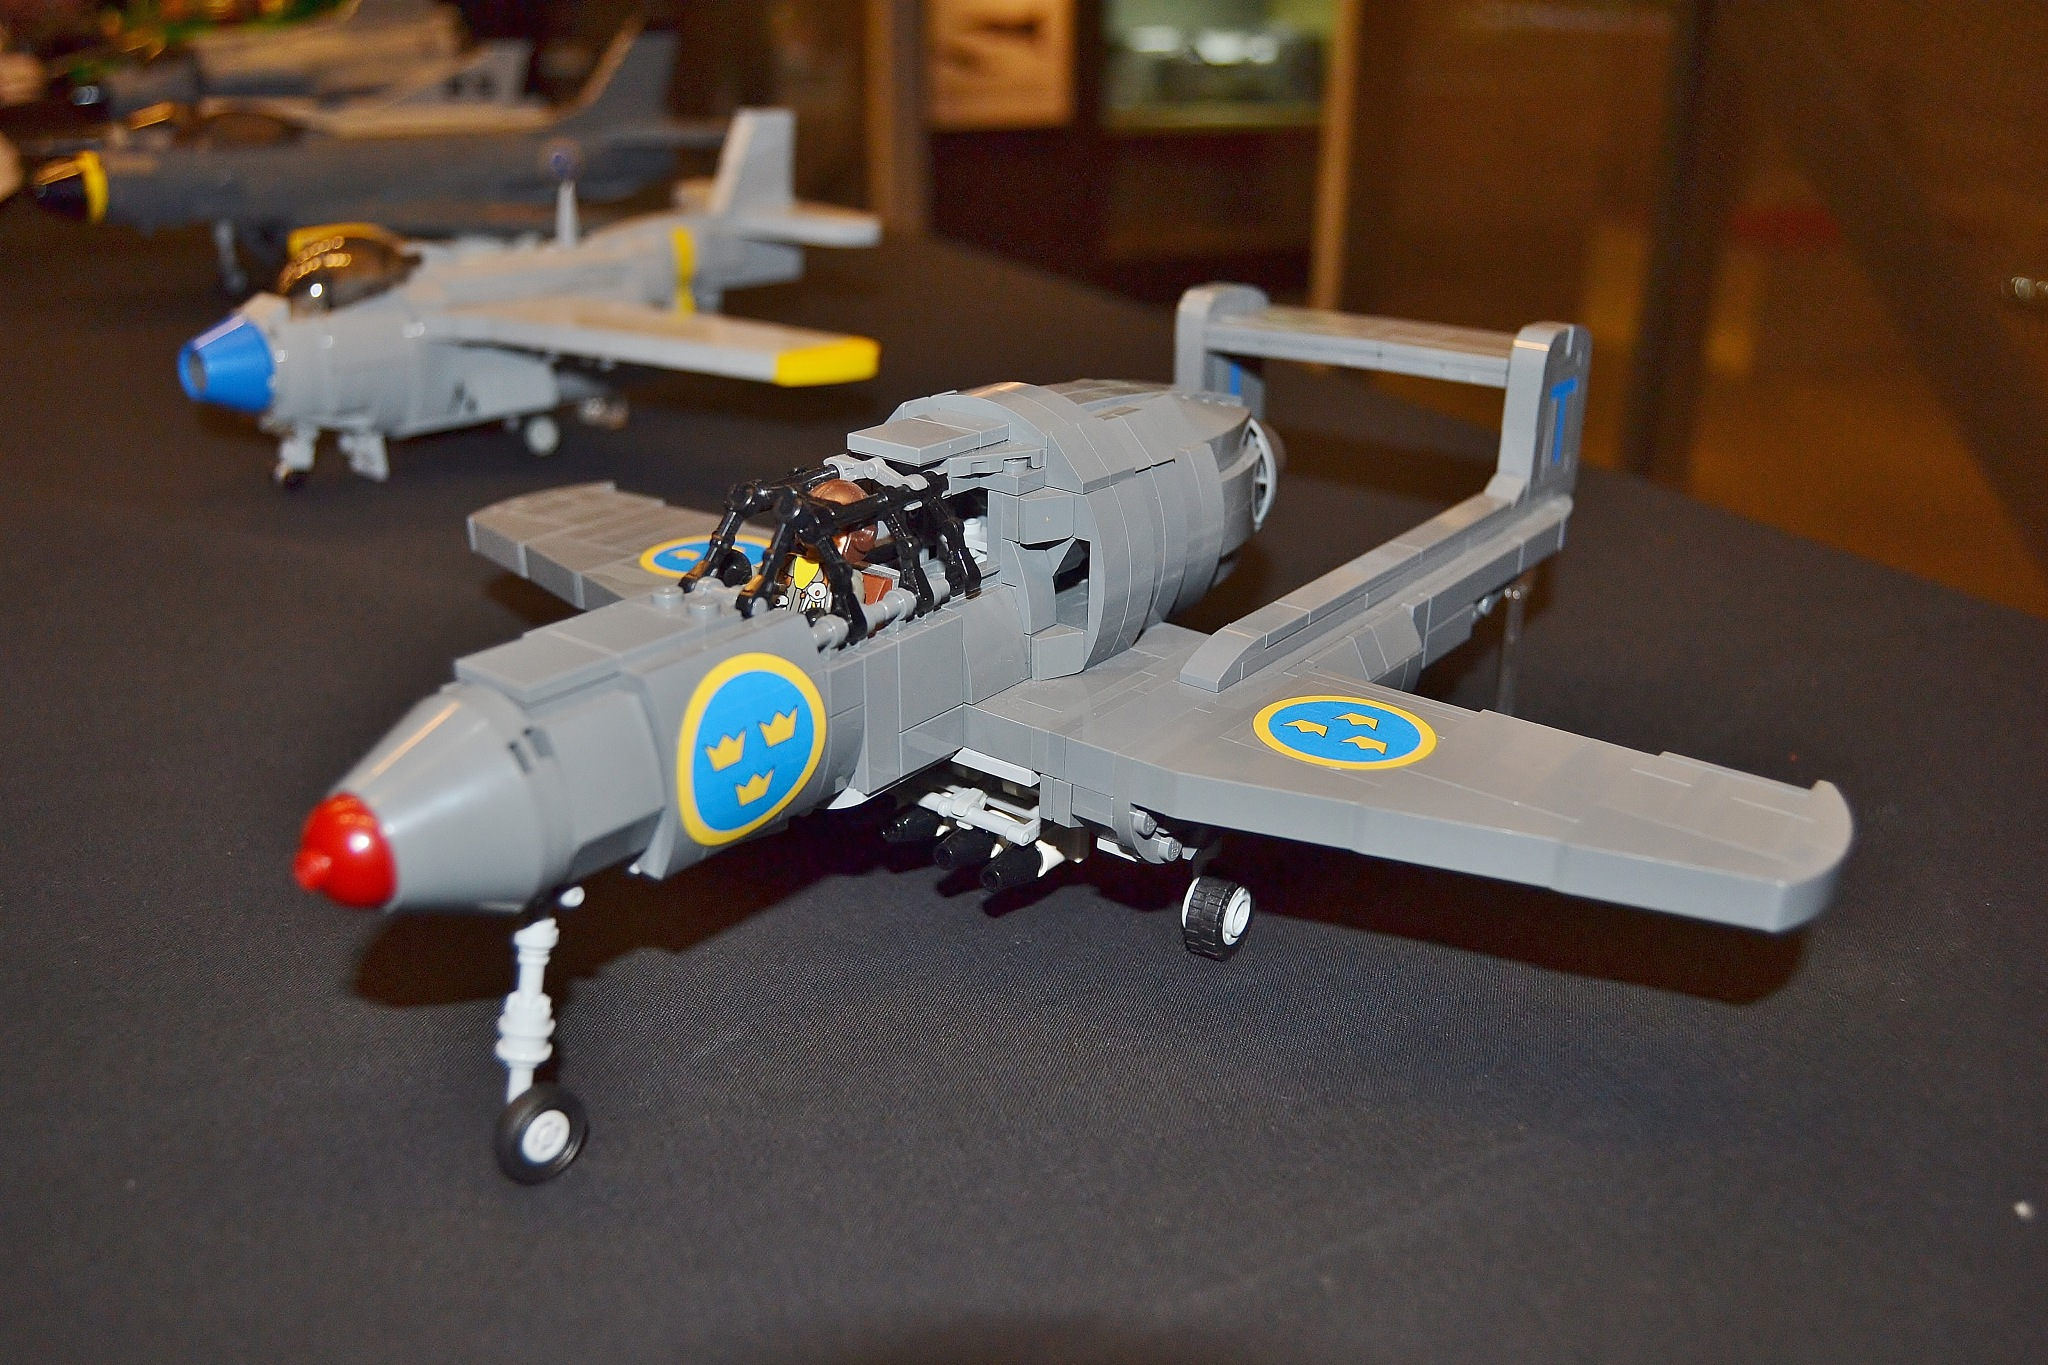 Lego Swebrick exhibition in the Air Force Museum by stefan.andersson3